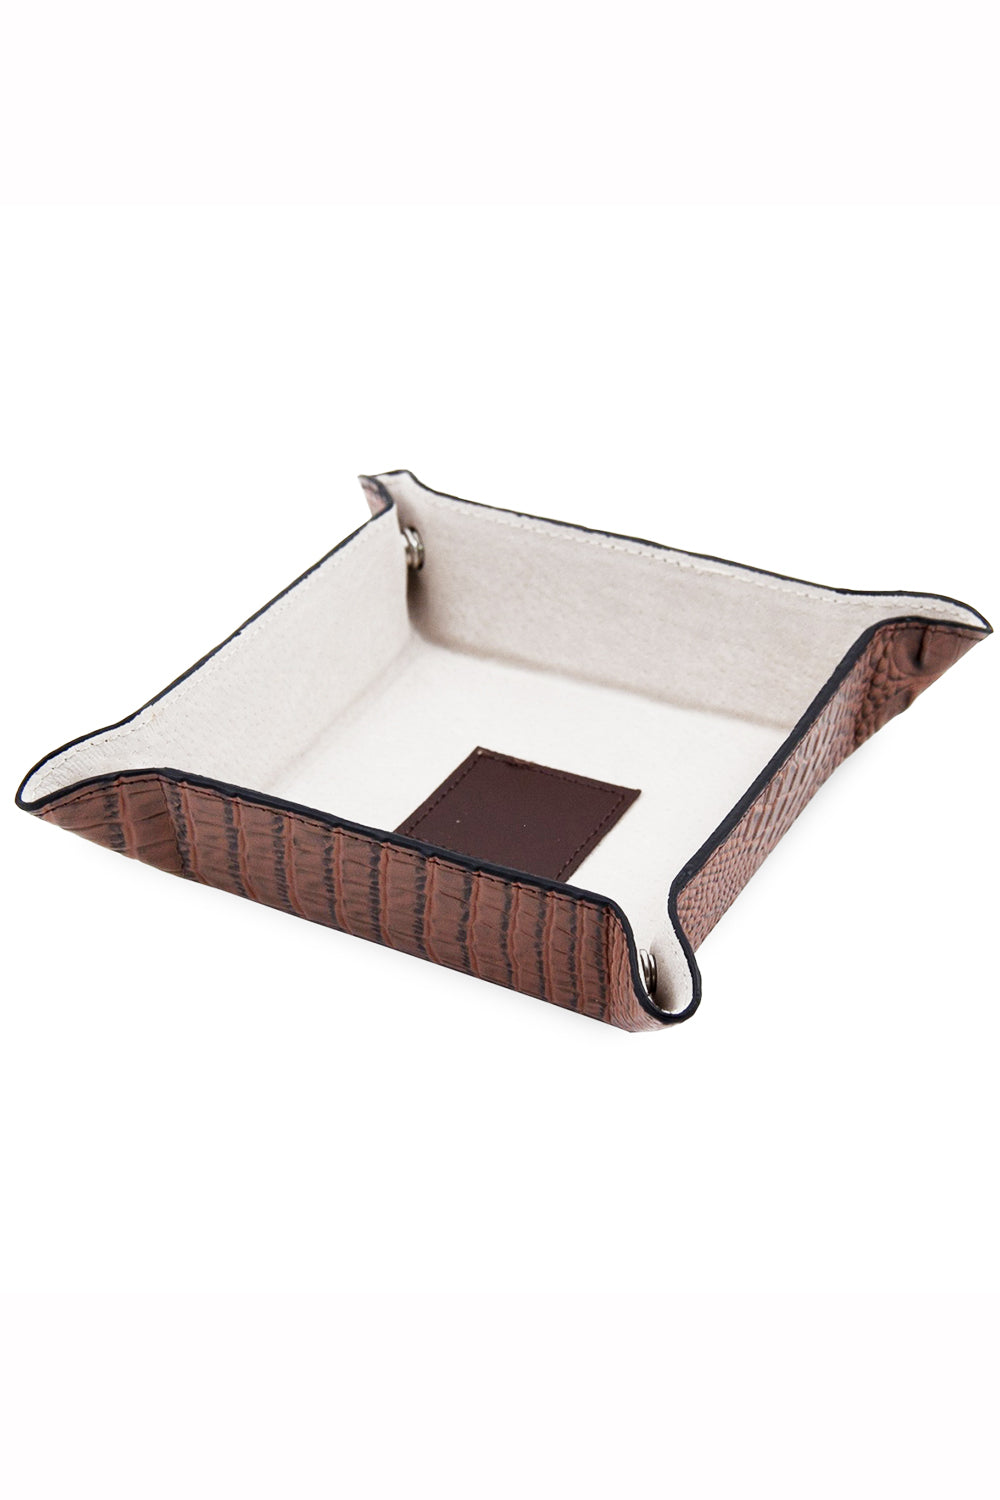 Travel Valet Tray - Brown Crocodile